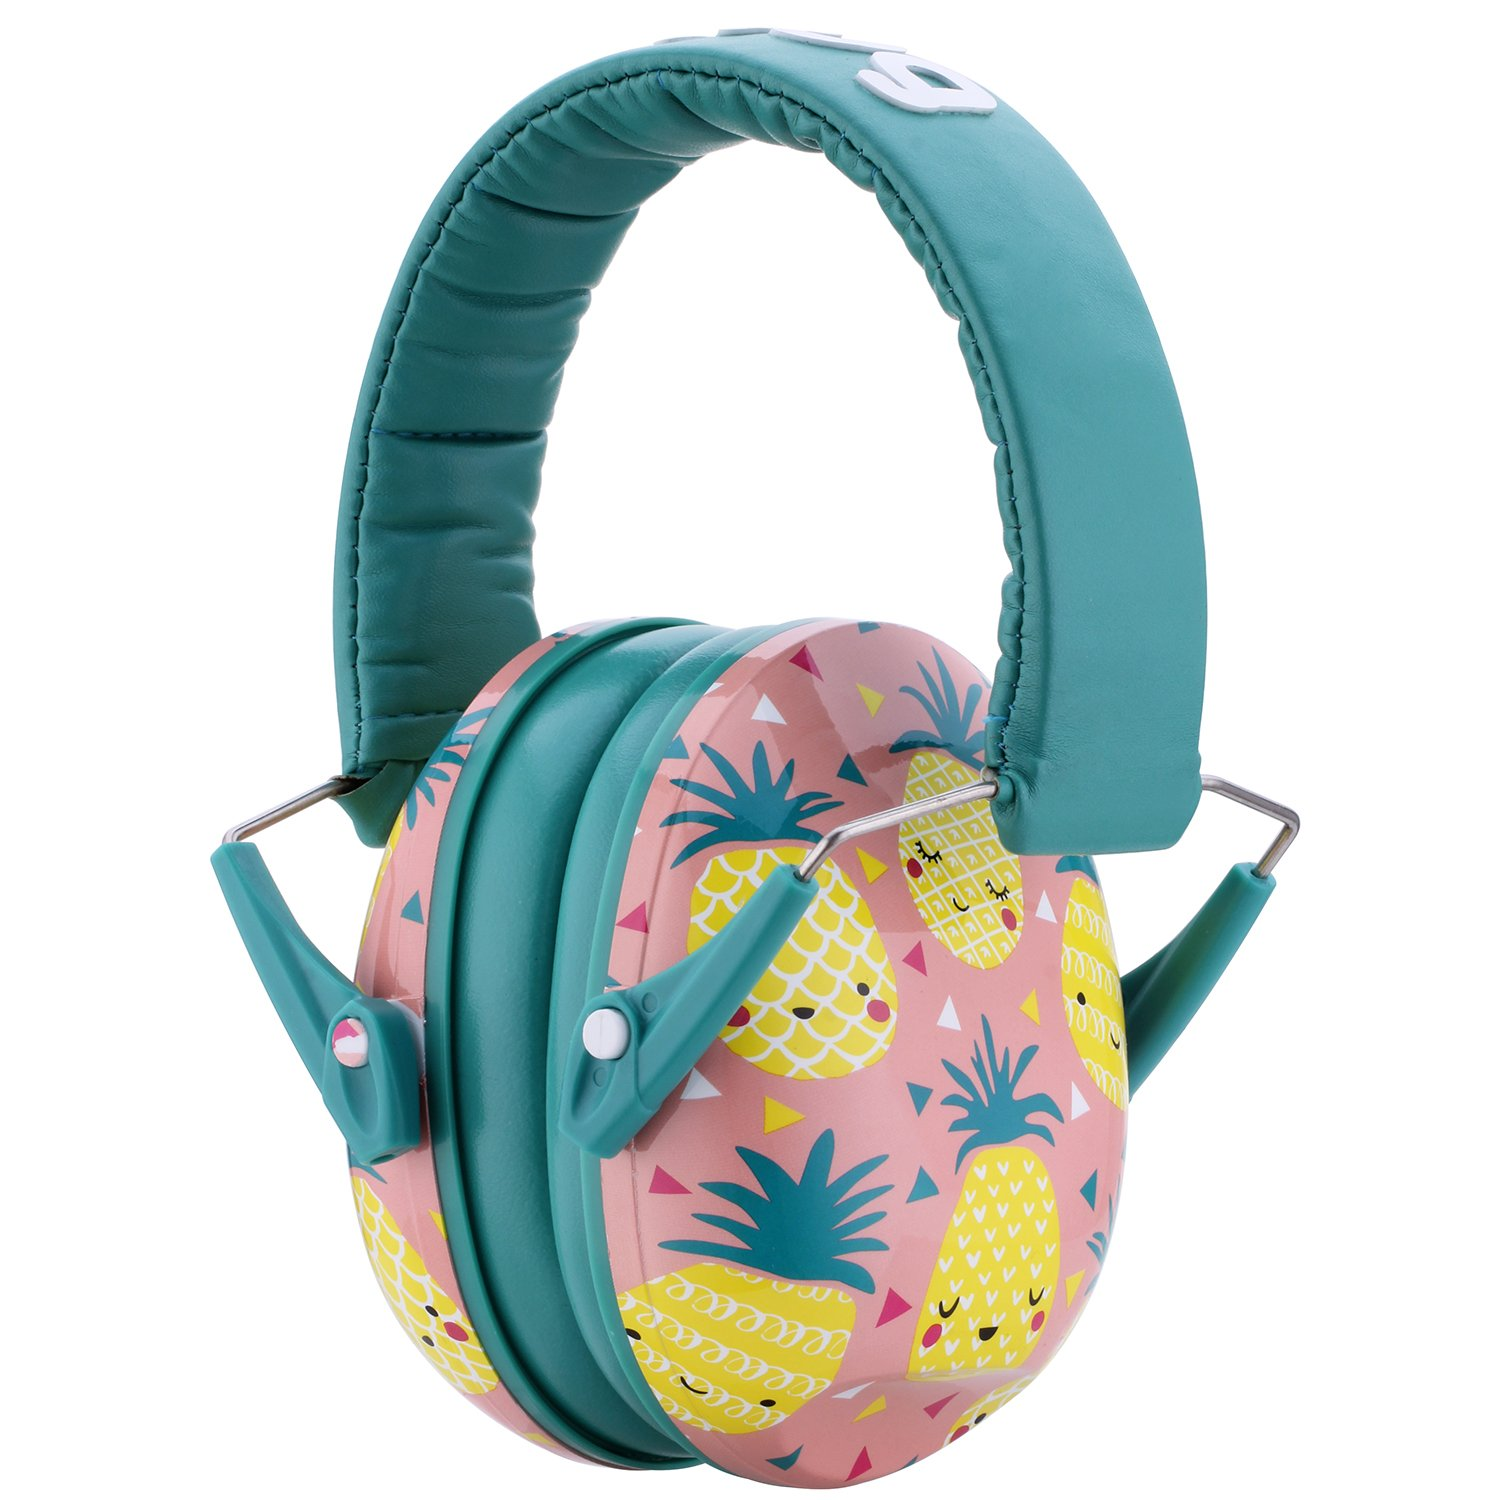 Snug Kids Earmuffs/Hearing Protectors - Adjustable Headband Ear Defenders For Children and Adults (Pineapples) by Snug